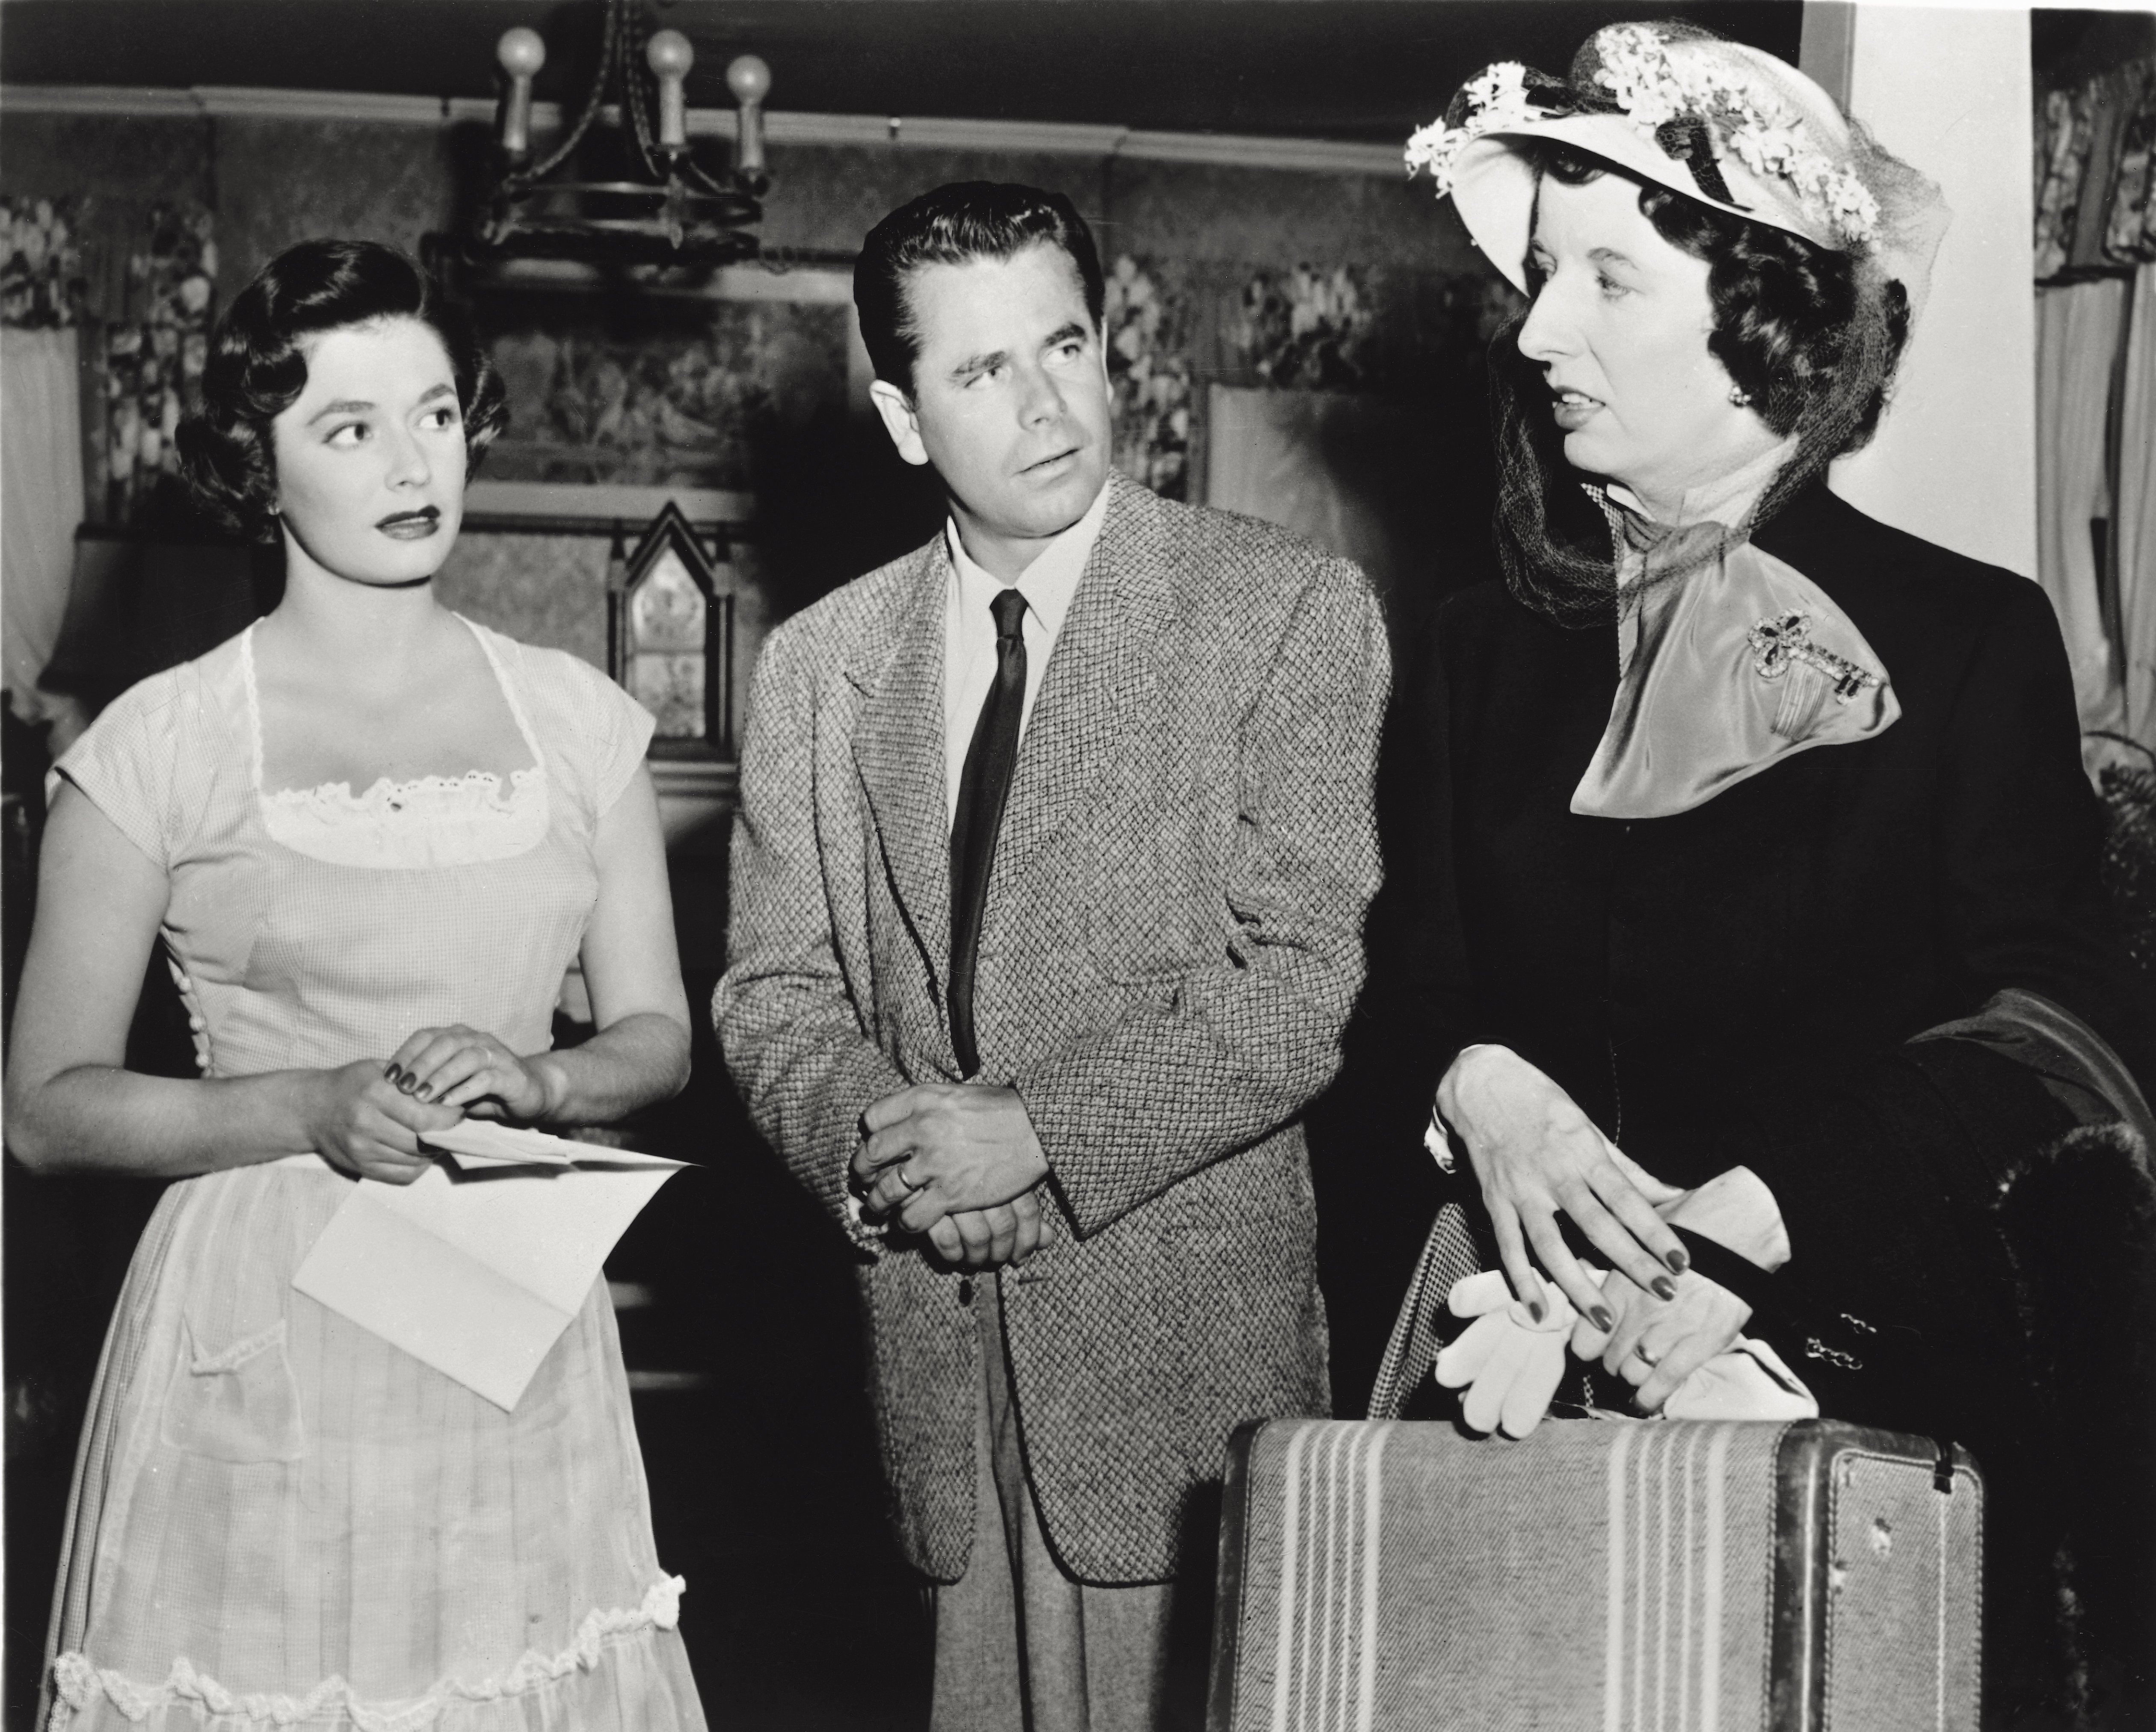 Actors Ruth Roman, Glenn Ford and Mary Wickes in 'Young Man with Ideas'. Ruth Roman, as Julie Webster, and Glenn Ford, as Maxwell Webster, interject with Mary Wickes, as Mrs. Jasper Gilpin. 1952.   Source: Getty Images